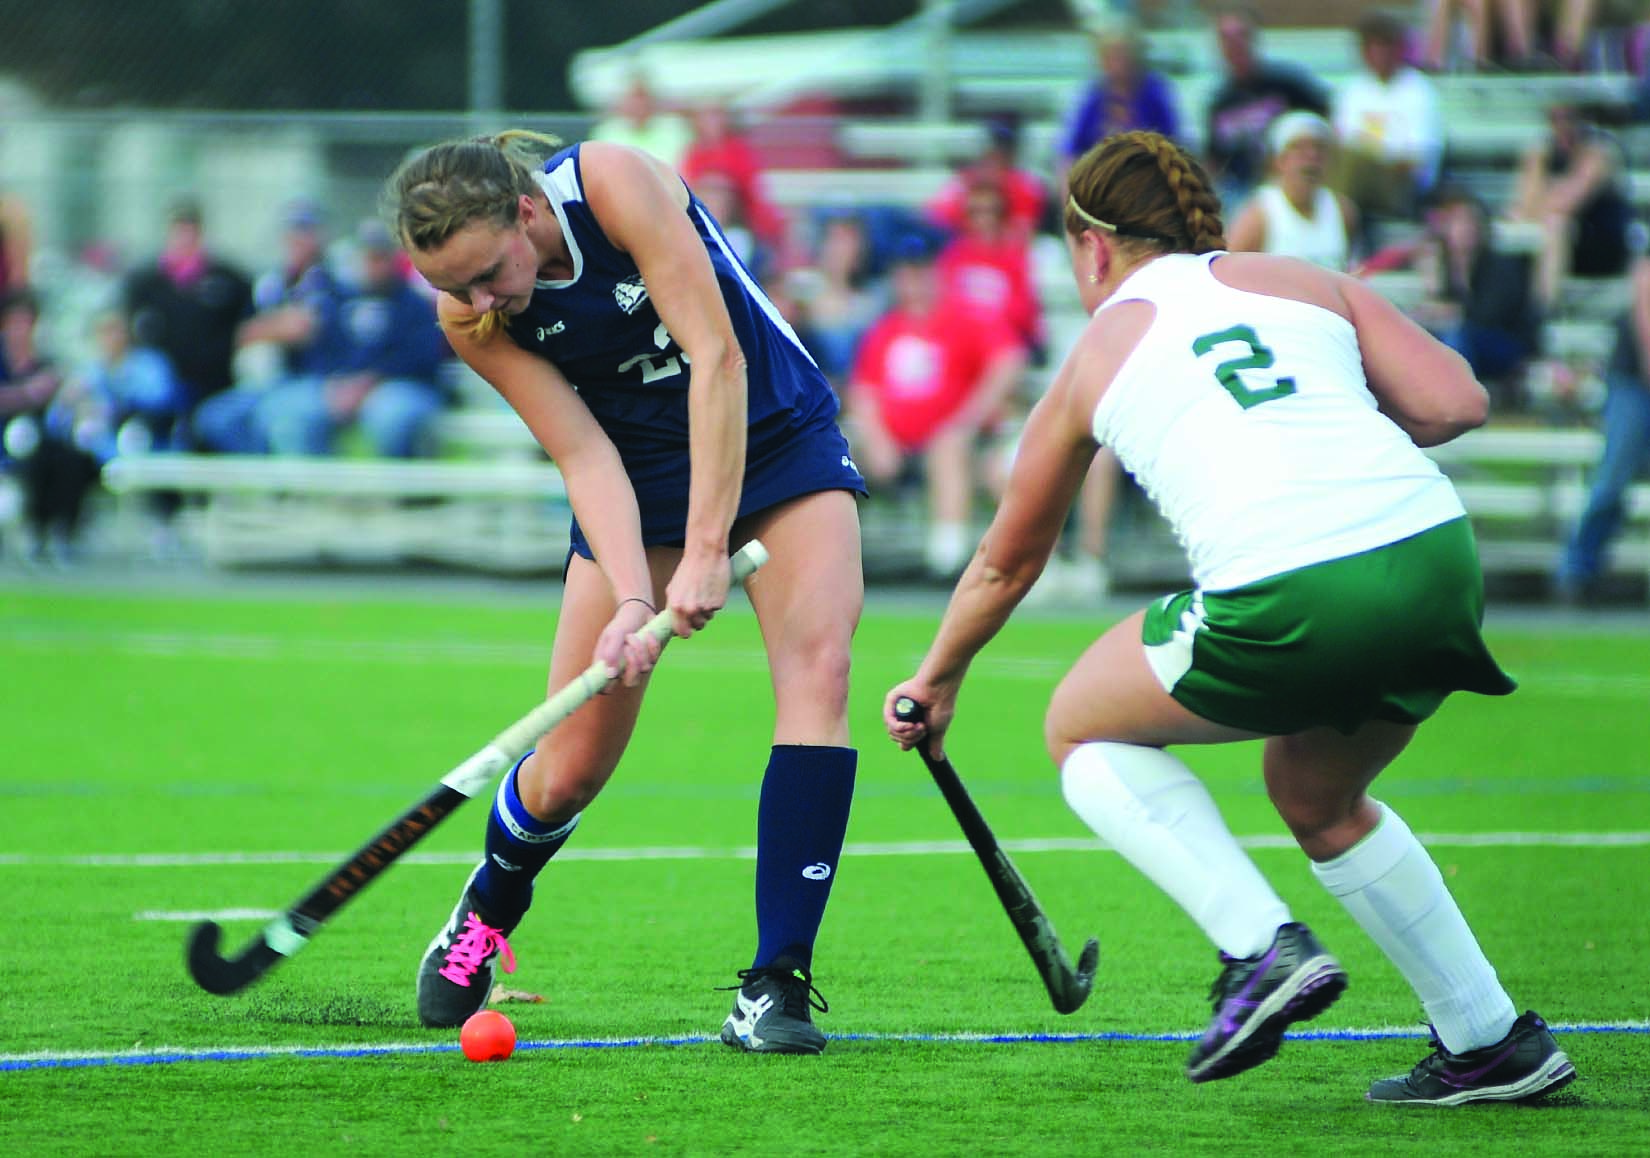 Lucy Kauffman '15 anchored the 2014 Ship field hockey defense that set a school record for fewest goals allowed in a season.